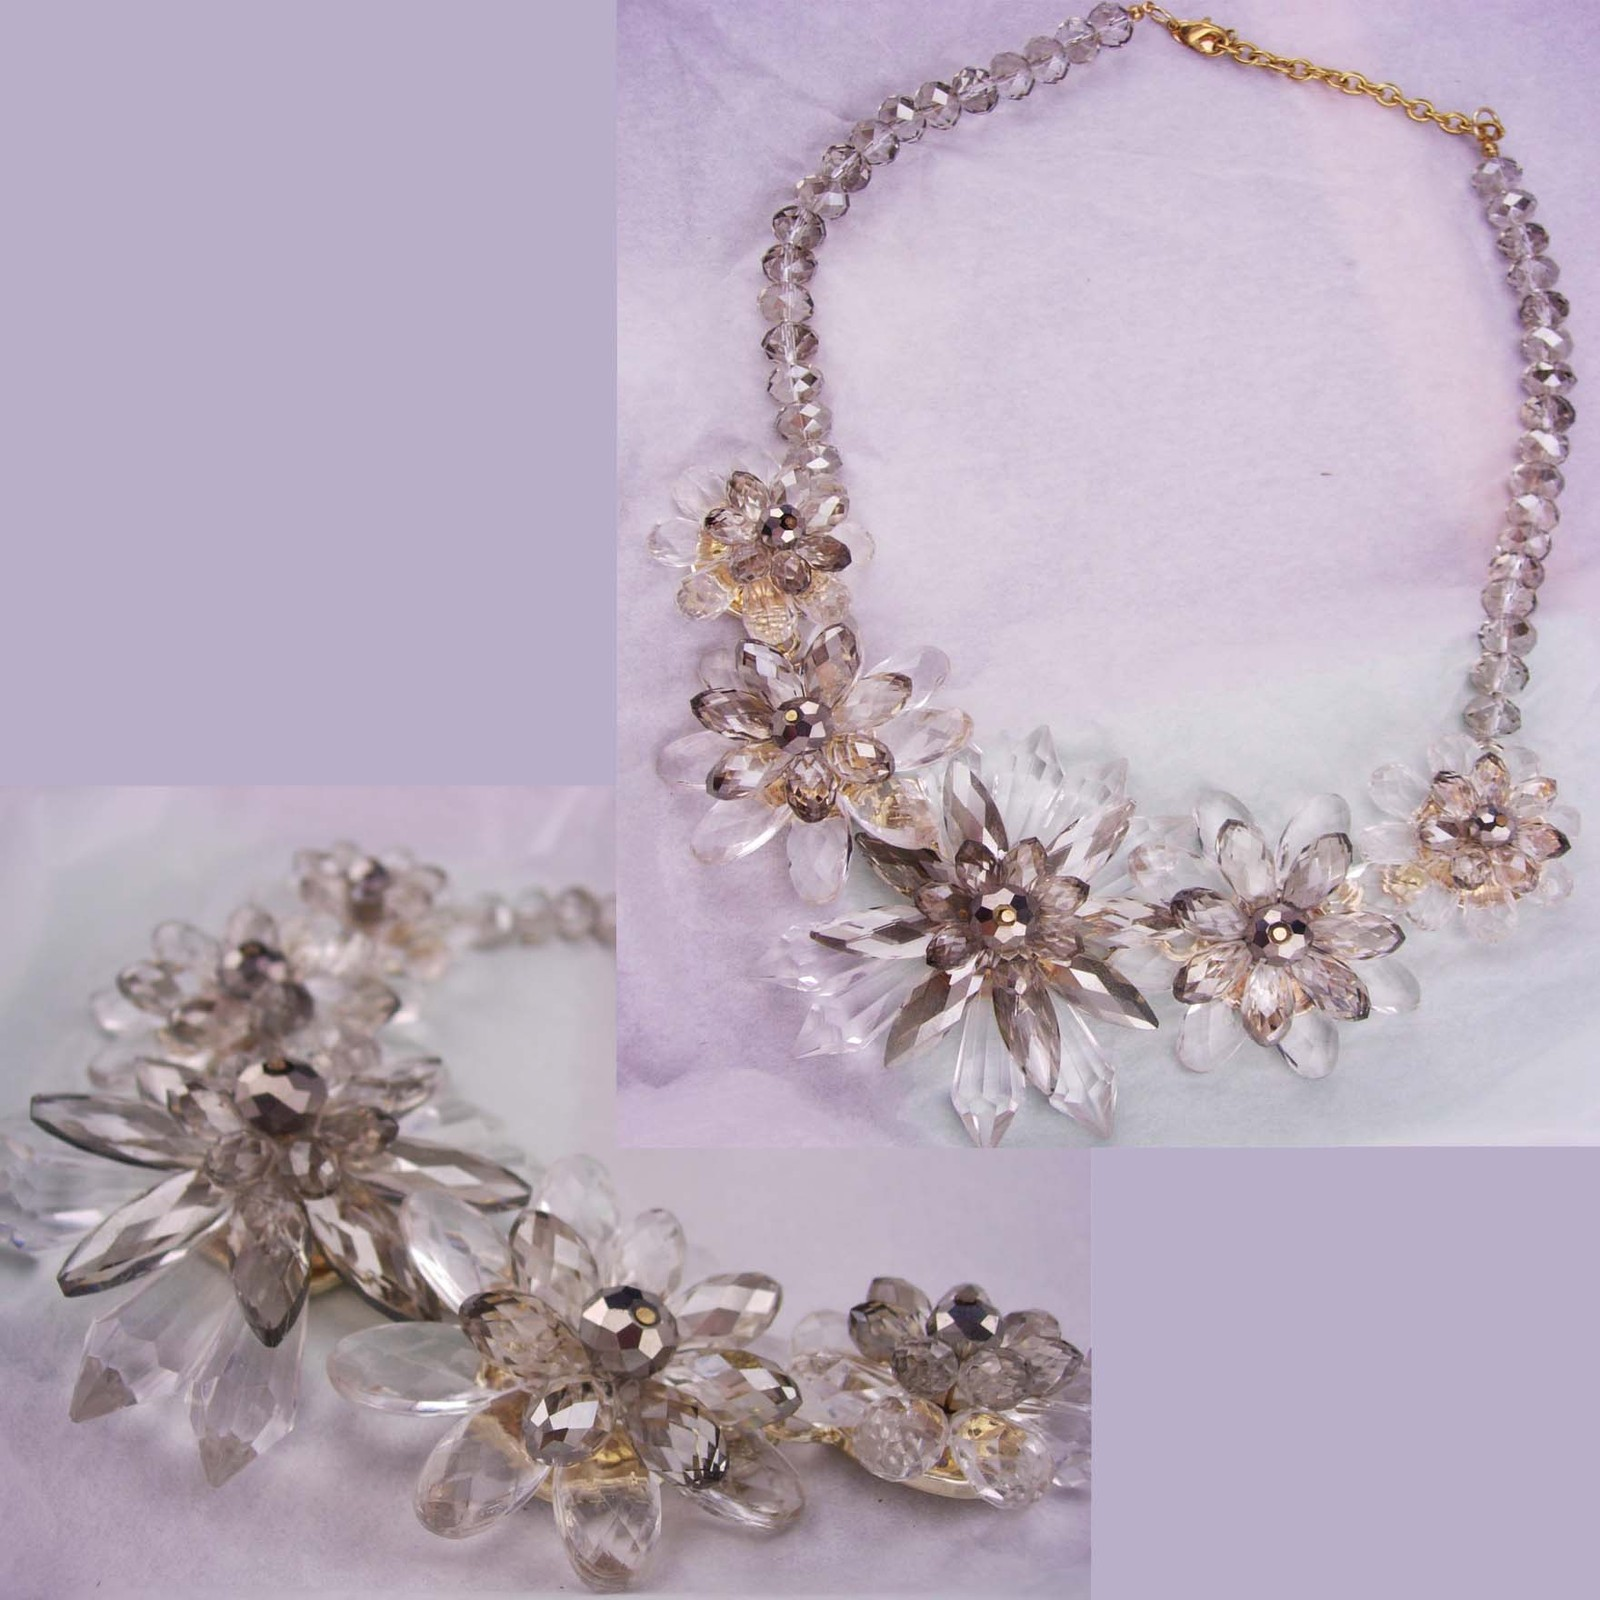 Statement necklace / Runway jewelry / crystal faceted bib / Drag queen / clear f